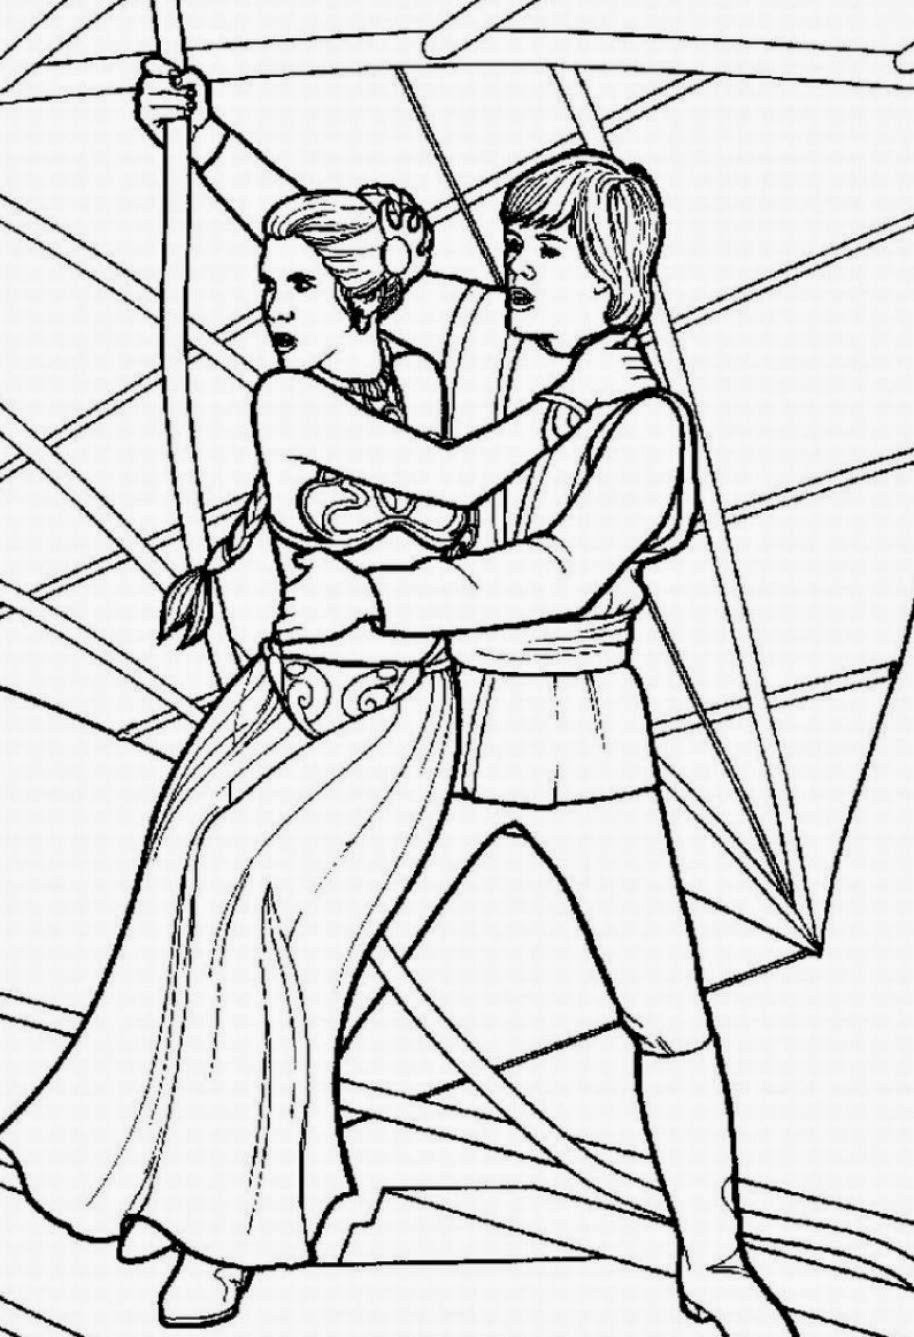 stars wars coloring pages 101 star wars coloring pages feb 2020darth vader wars pages coloring stars